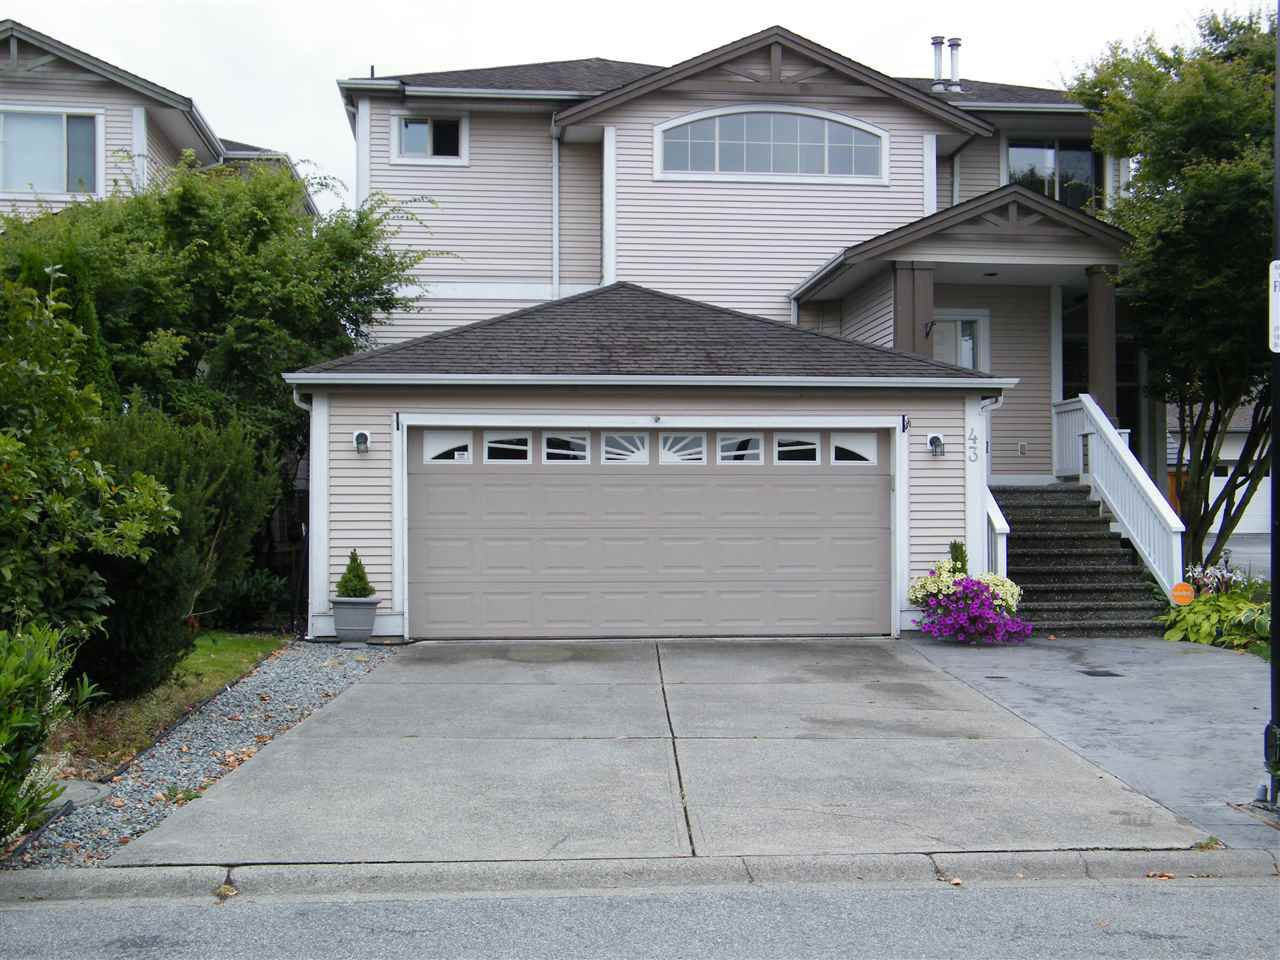 """Main Photo: 43 8675 209 Street in Langley: Walnut Grove House for sale in """"Sycamores"""" : MLS®# R2100072"""